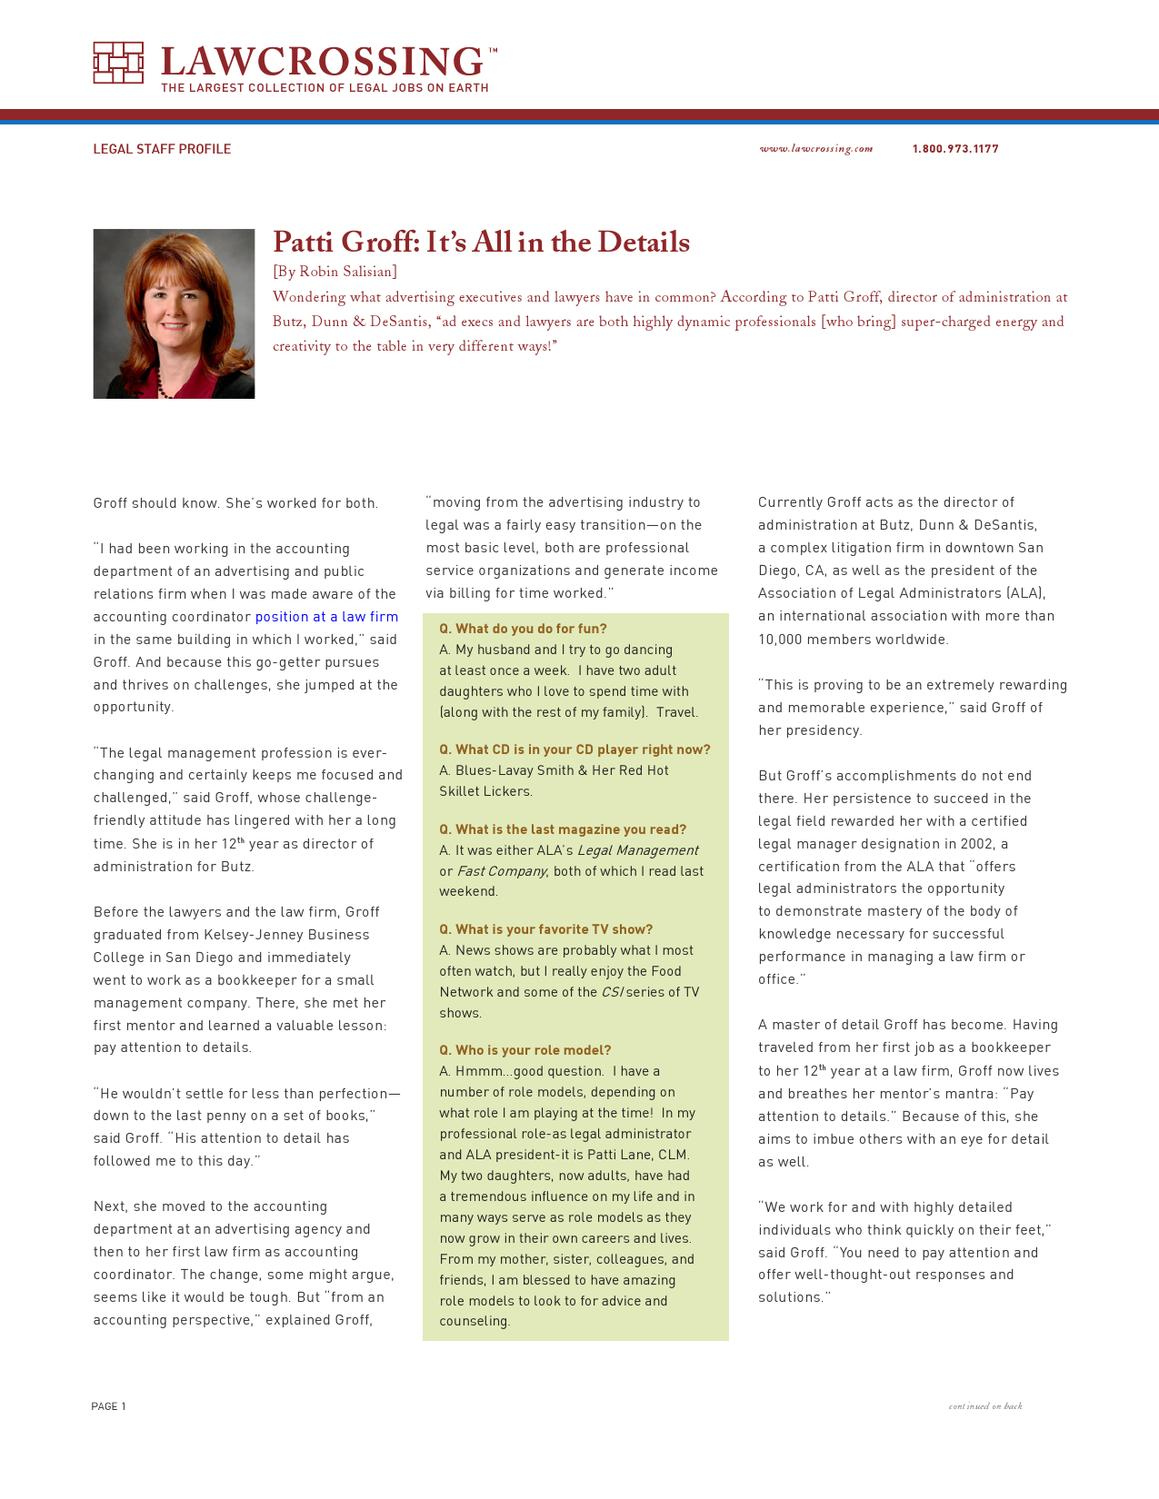 Patti Groff: It's All in the Details by Roger Croft - issuu